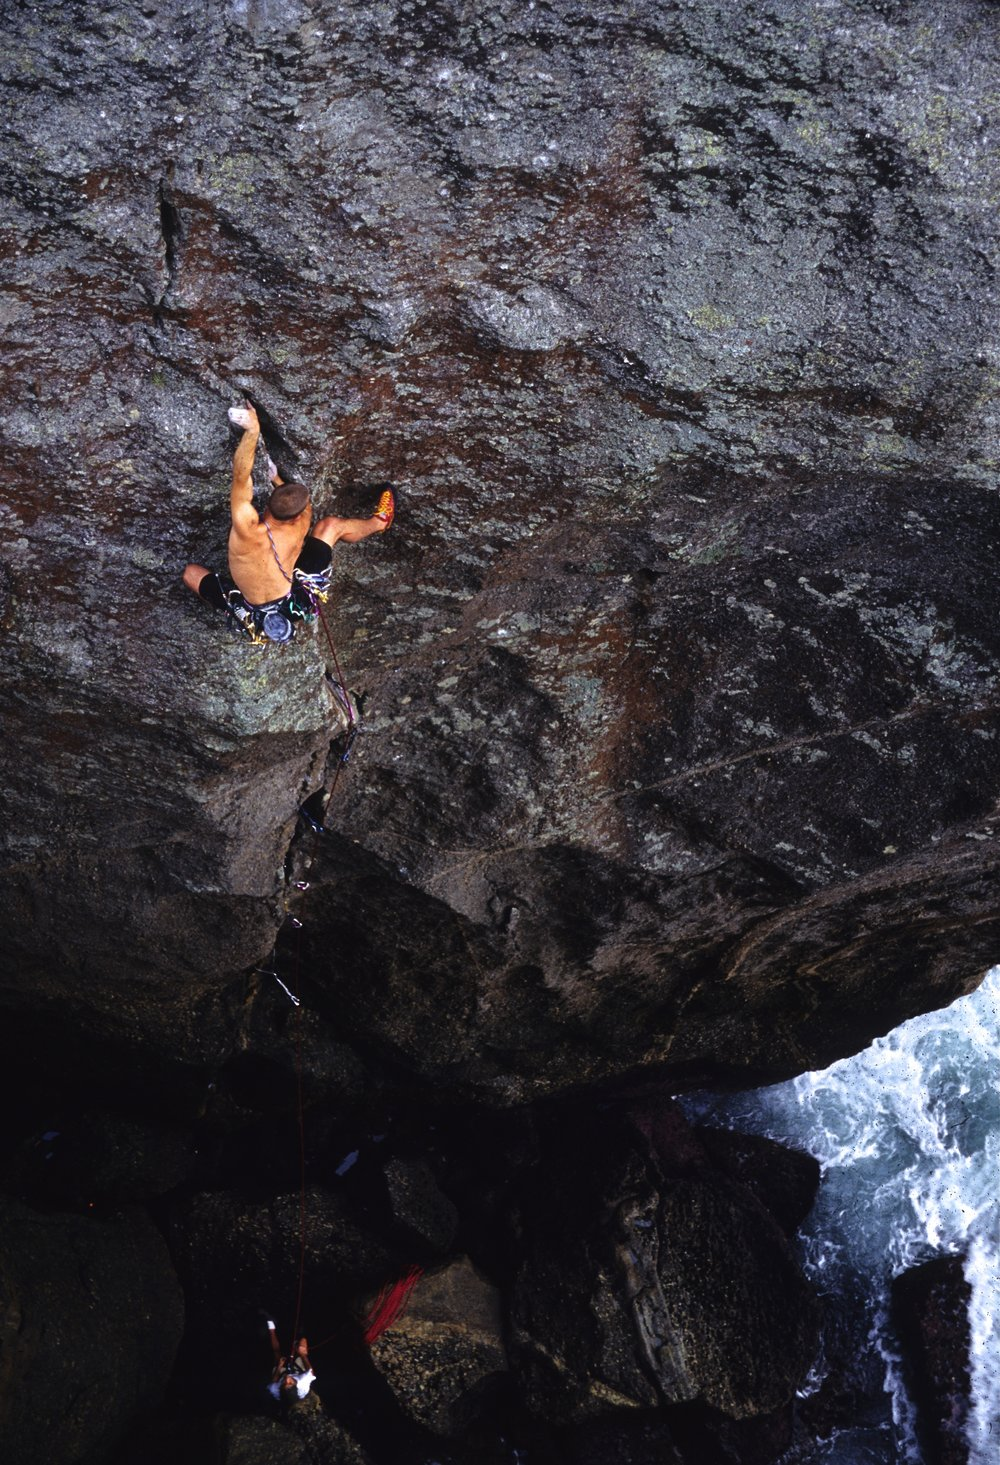 Kryptonite E7 6b, Itaquatiara. First ascent in 2000.  Photo: Mike Robertson